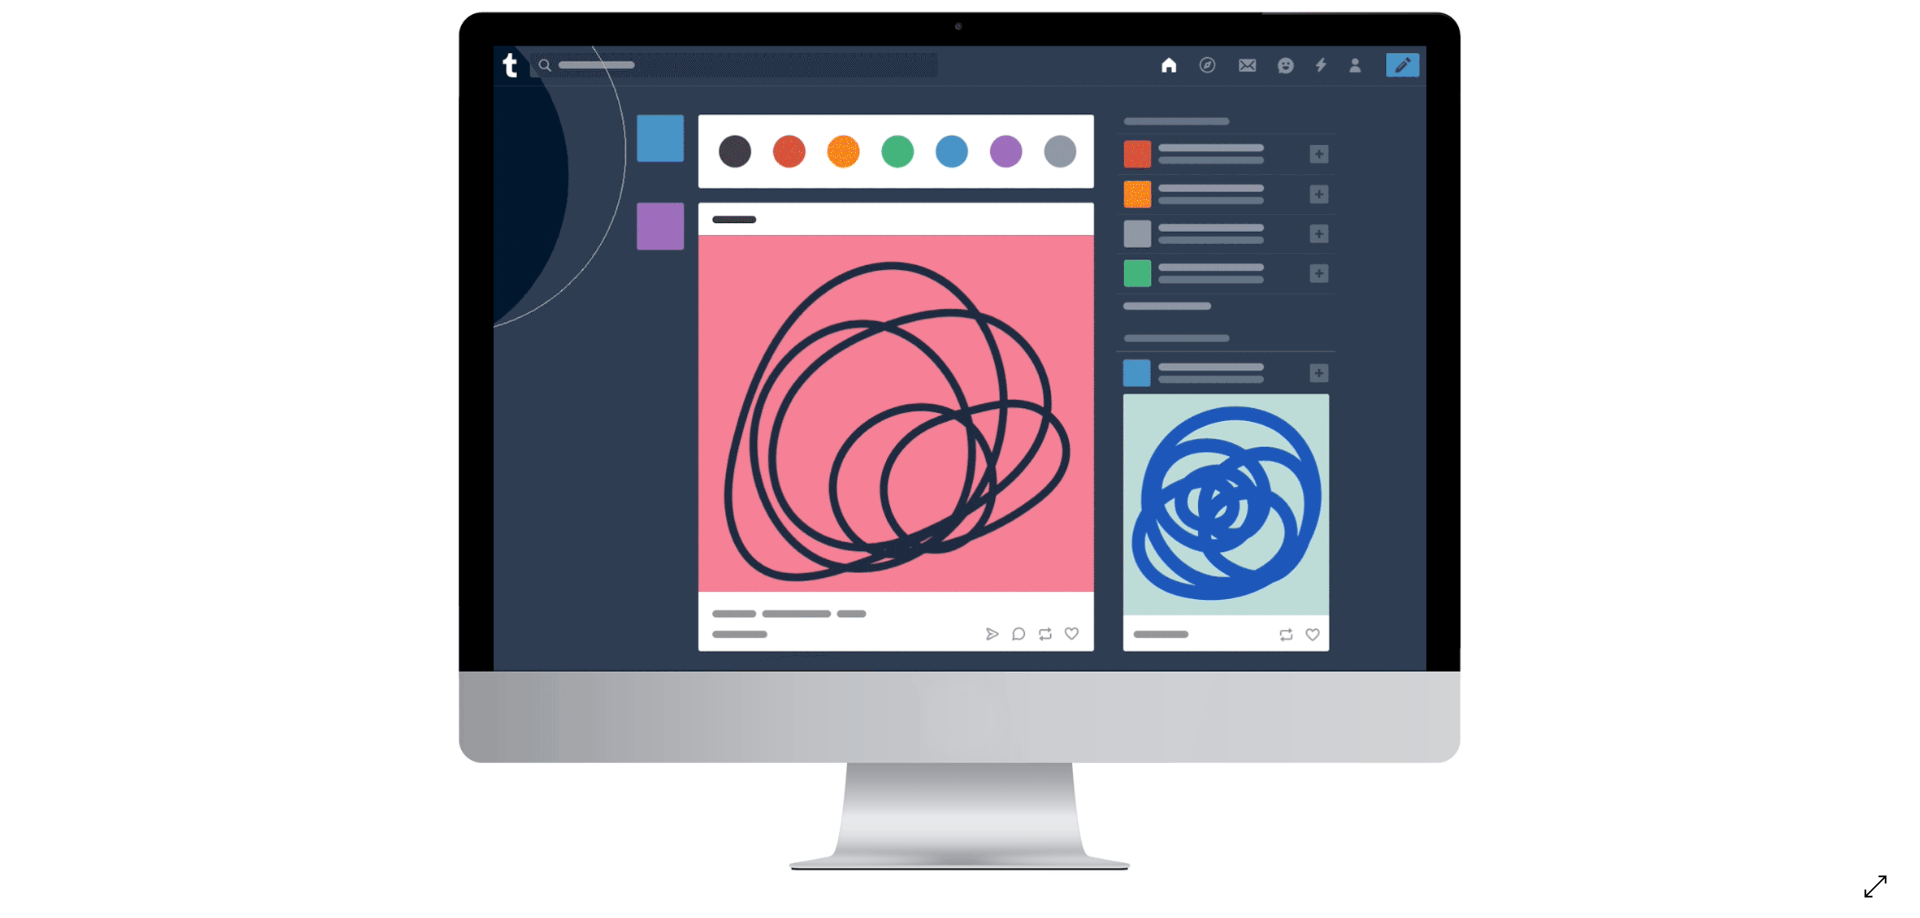 [Updated] Tumblr gets a facelift - new dashboard colors update where 'blue is darker, grays are lighter'